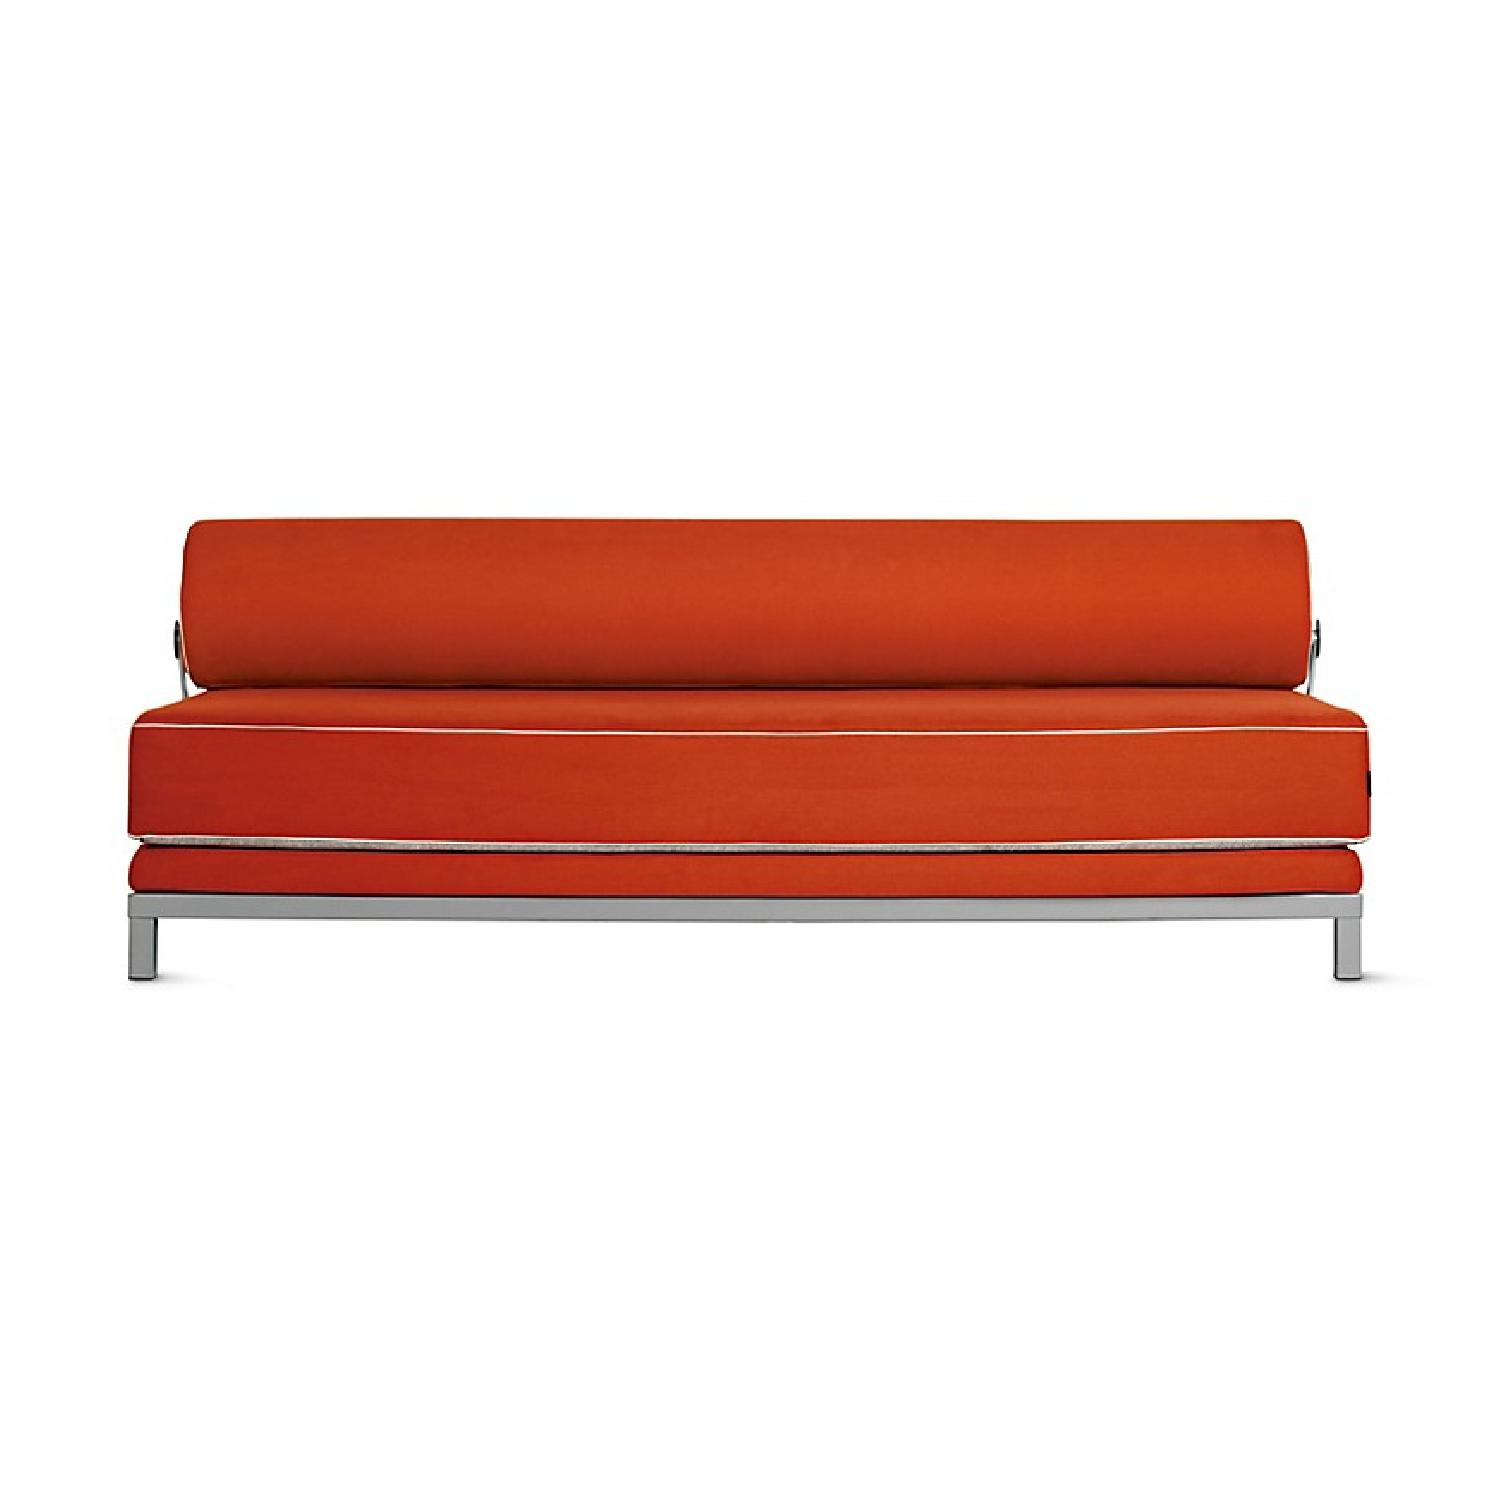 dwr bay sleeper sofa review the best bed design within reach twilight aptdeco